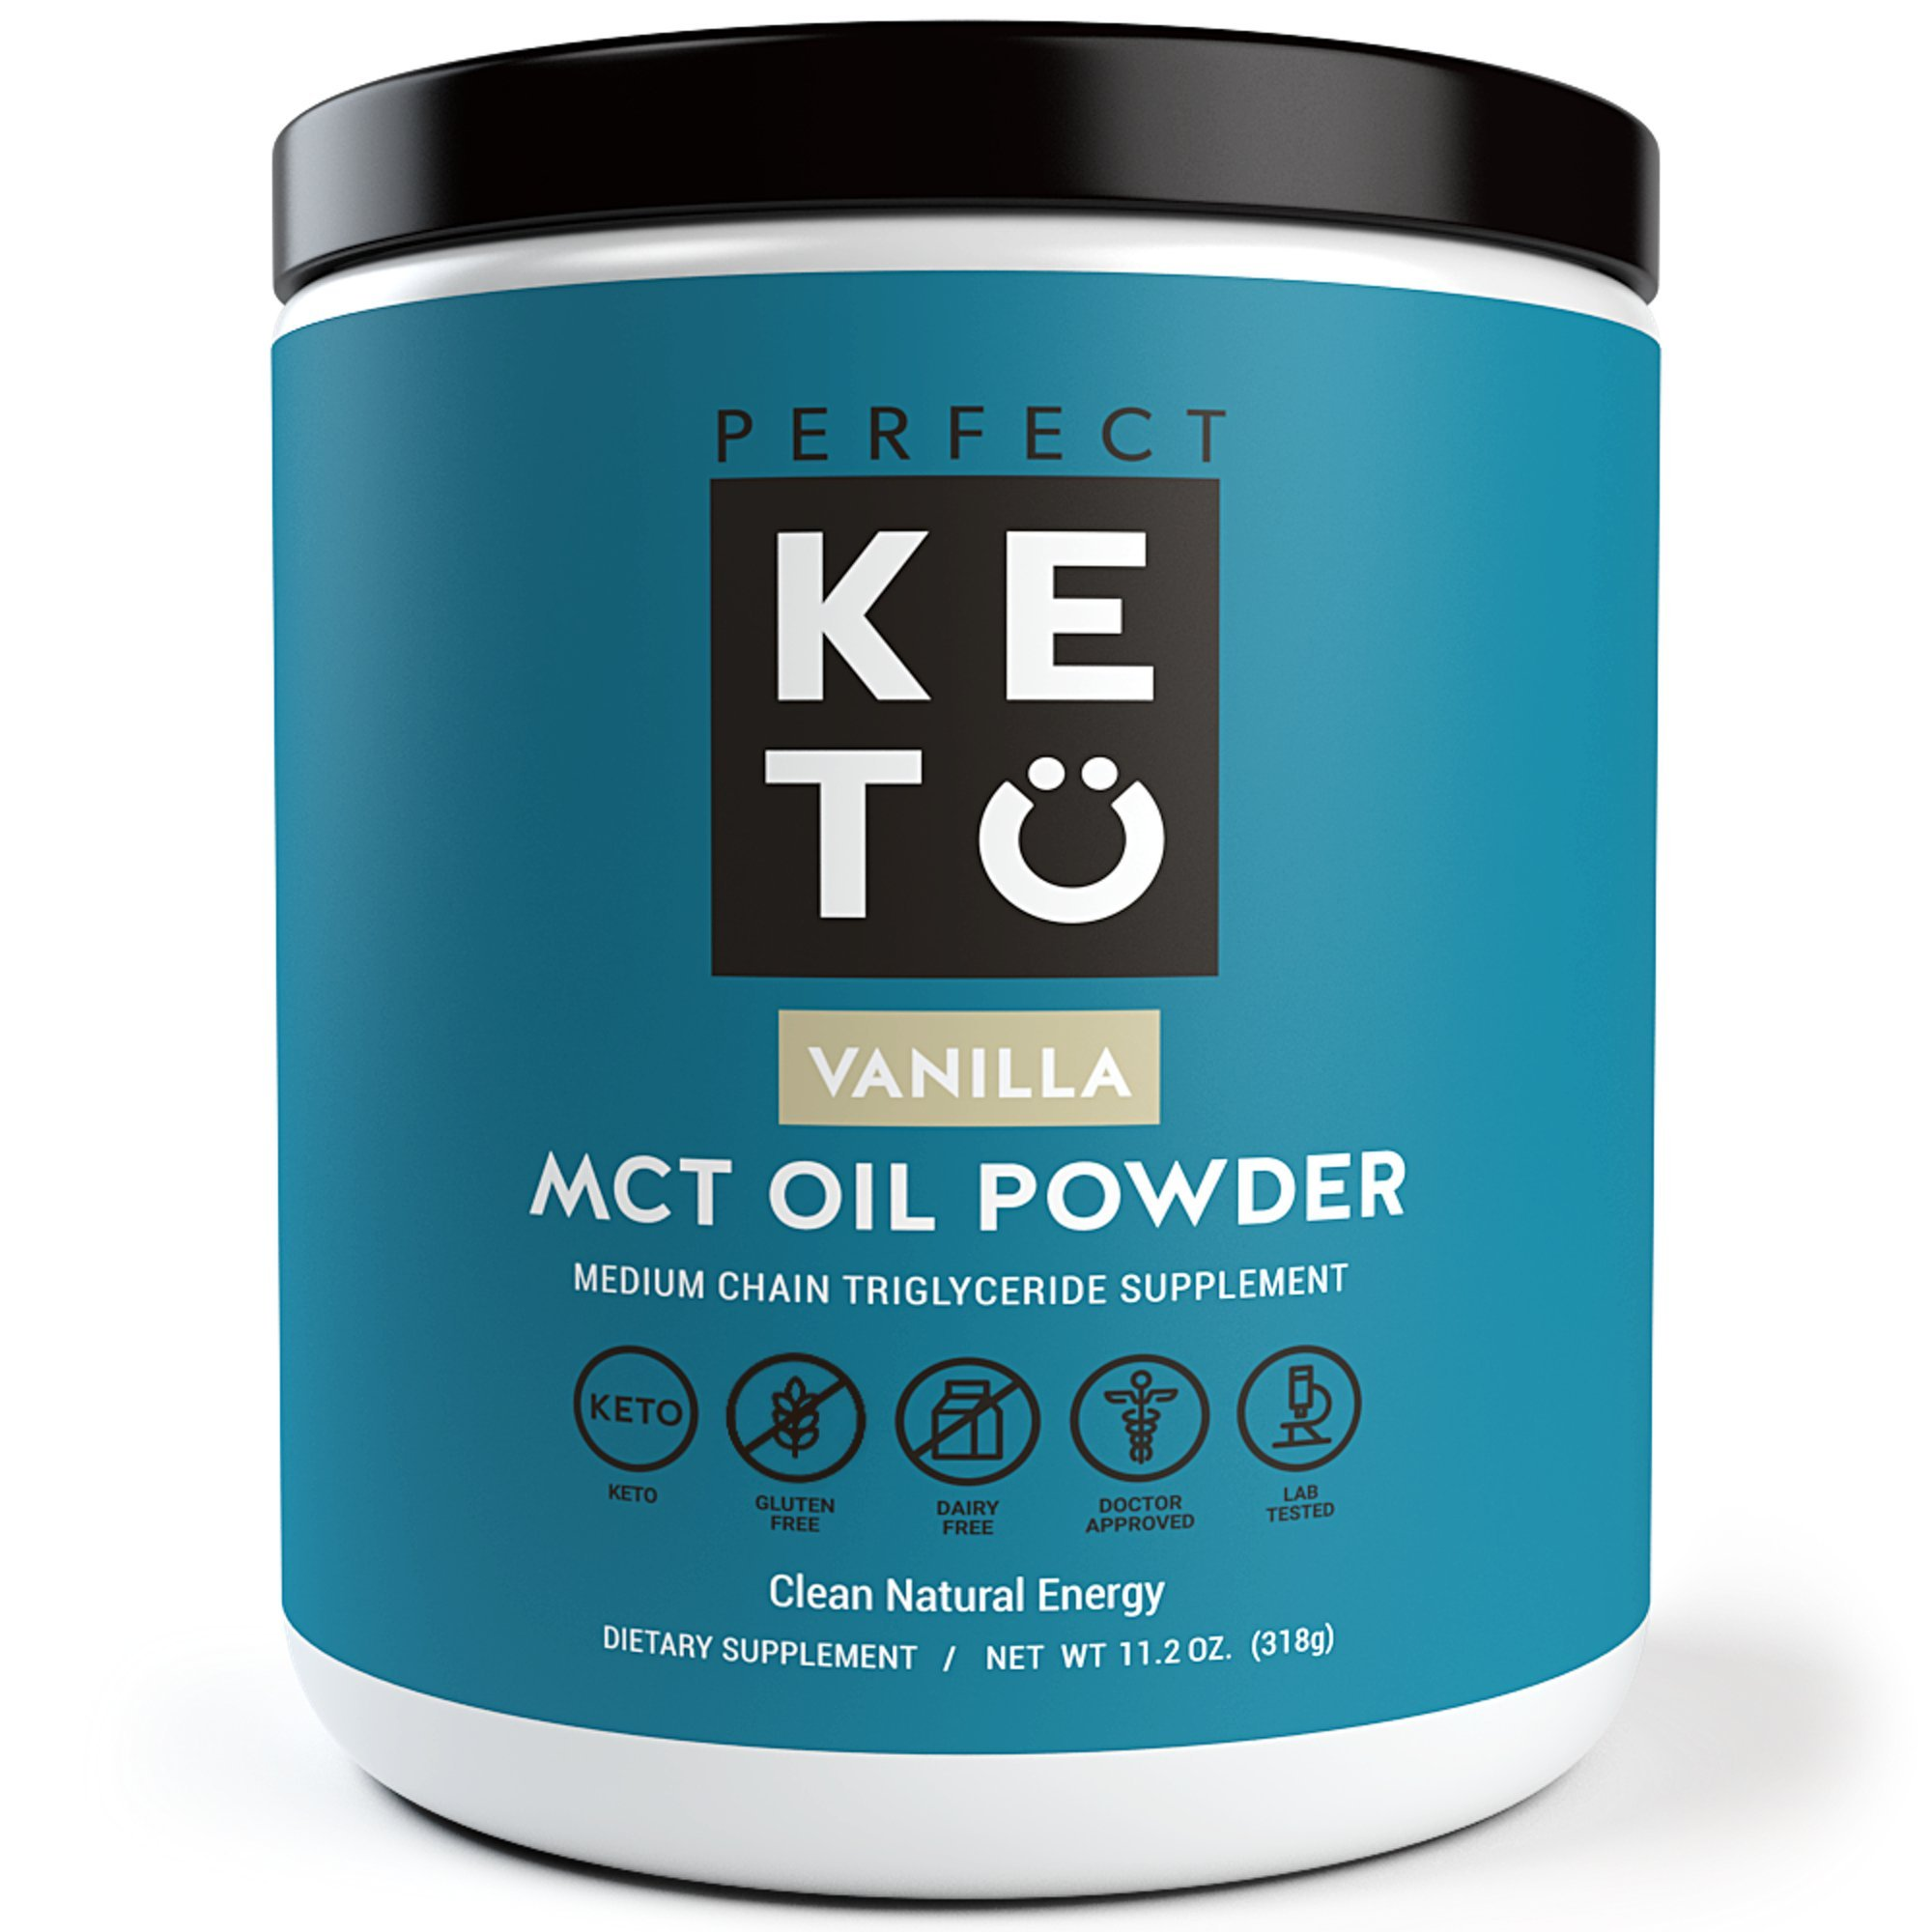 Perfect Keto MCT Oil Powder: Vanilla Ketosis Supplement (Medium Chain Triglycerides - Coconuts) for Ketone Energy - Paleo Natural Non Dairy Ketogenic Keto Coffee Creamer